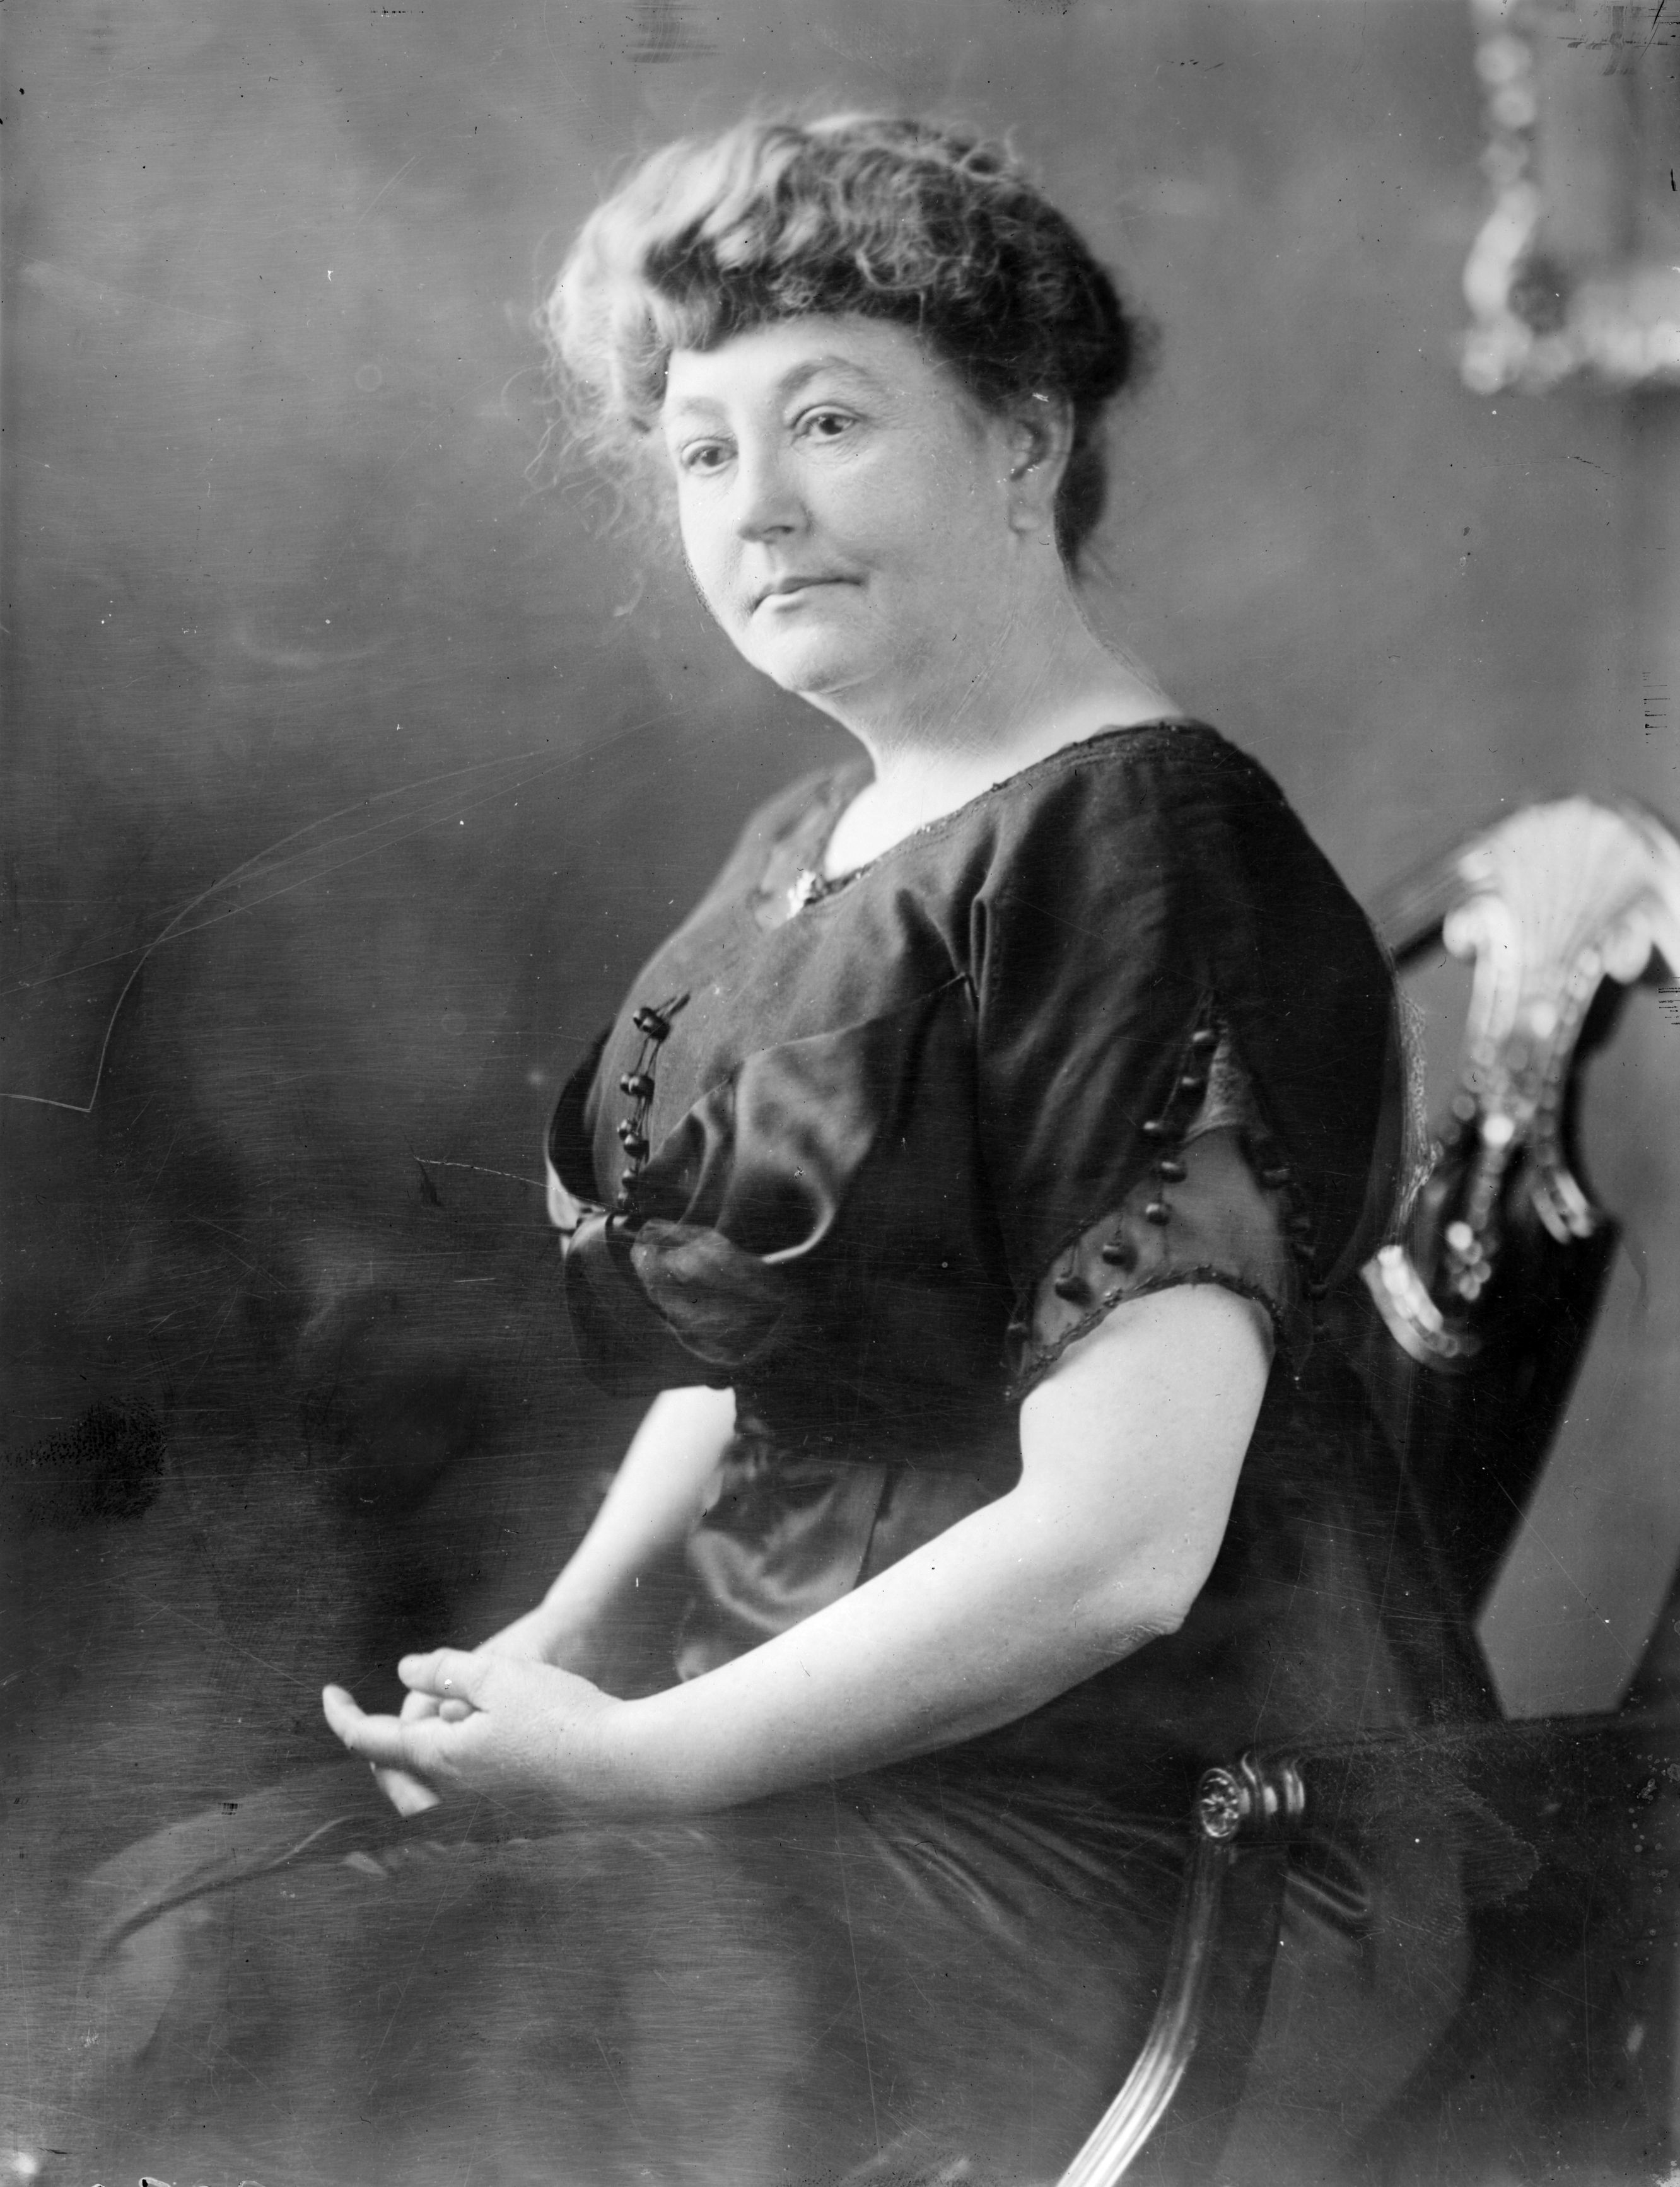 Causes of the First Ladies: Ellen Wilson was the first president's wife to support a cause that resulted in legislation. After touring the capital's slums, she lobbied to establish better housing for the poor. Just before her death in 1914, Congress passed the Alley Dwelling Bill. (Topical Press Agency/Getty Images)